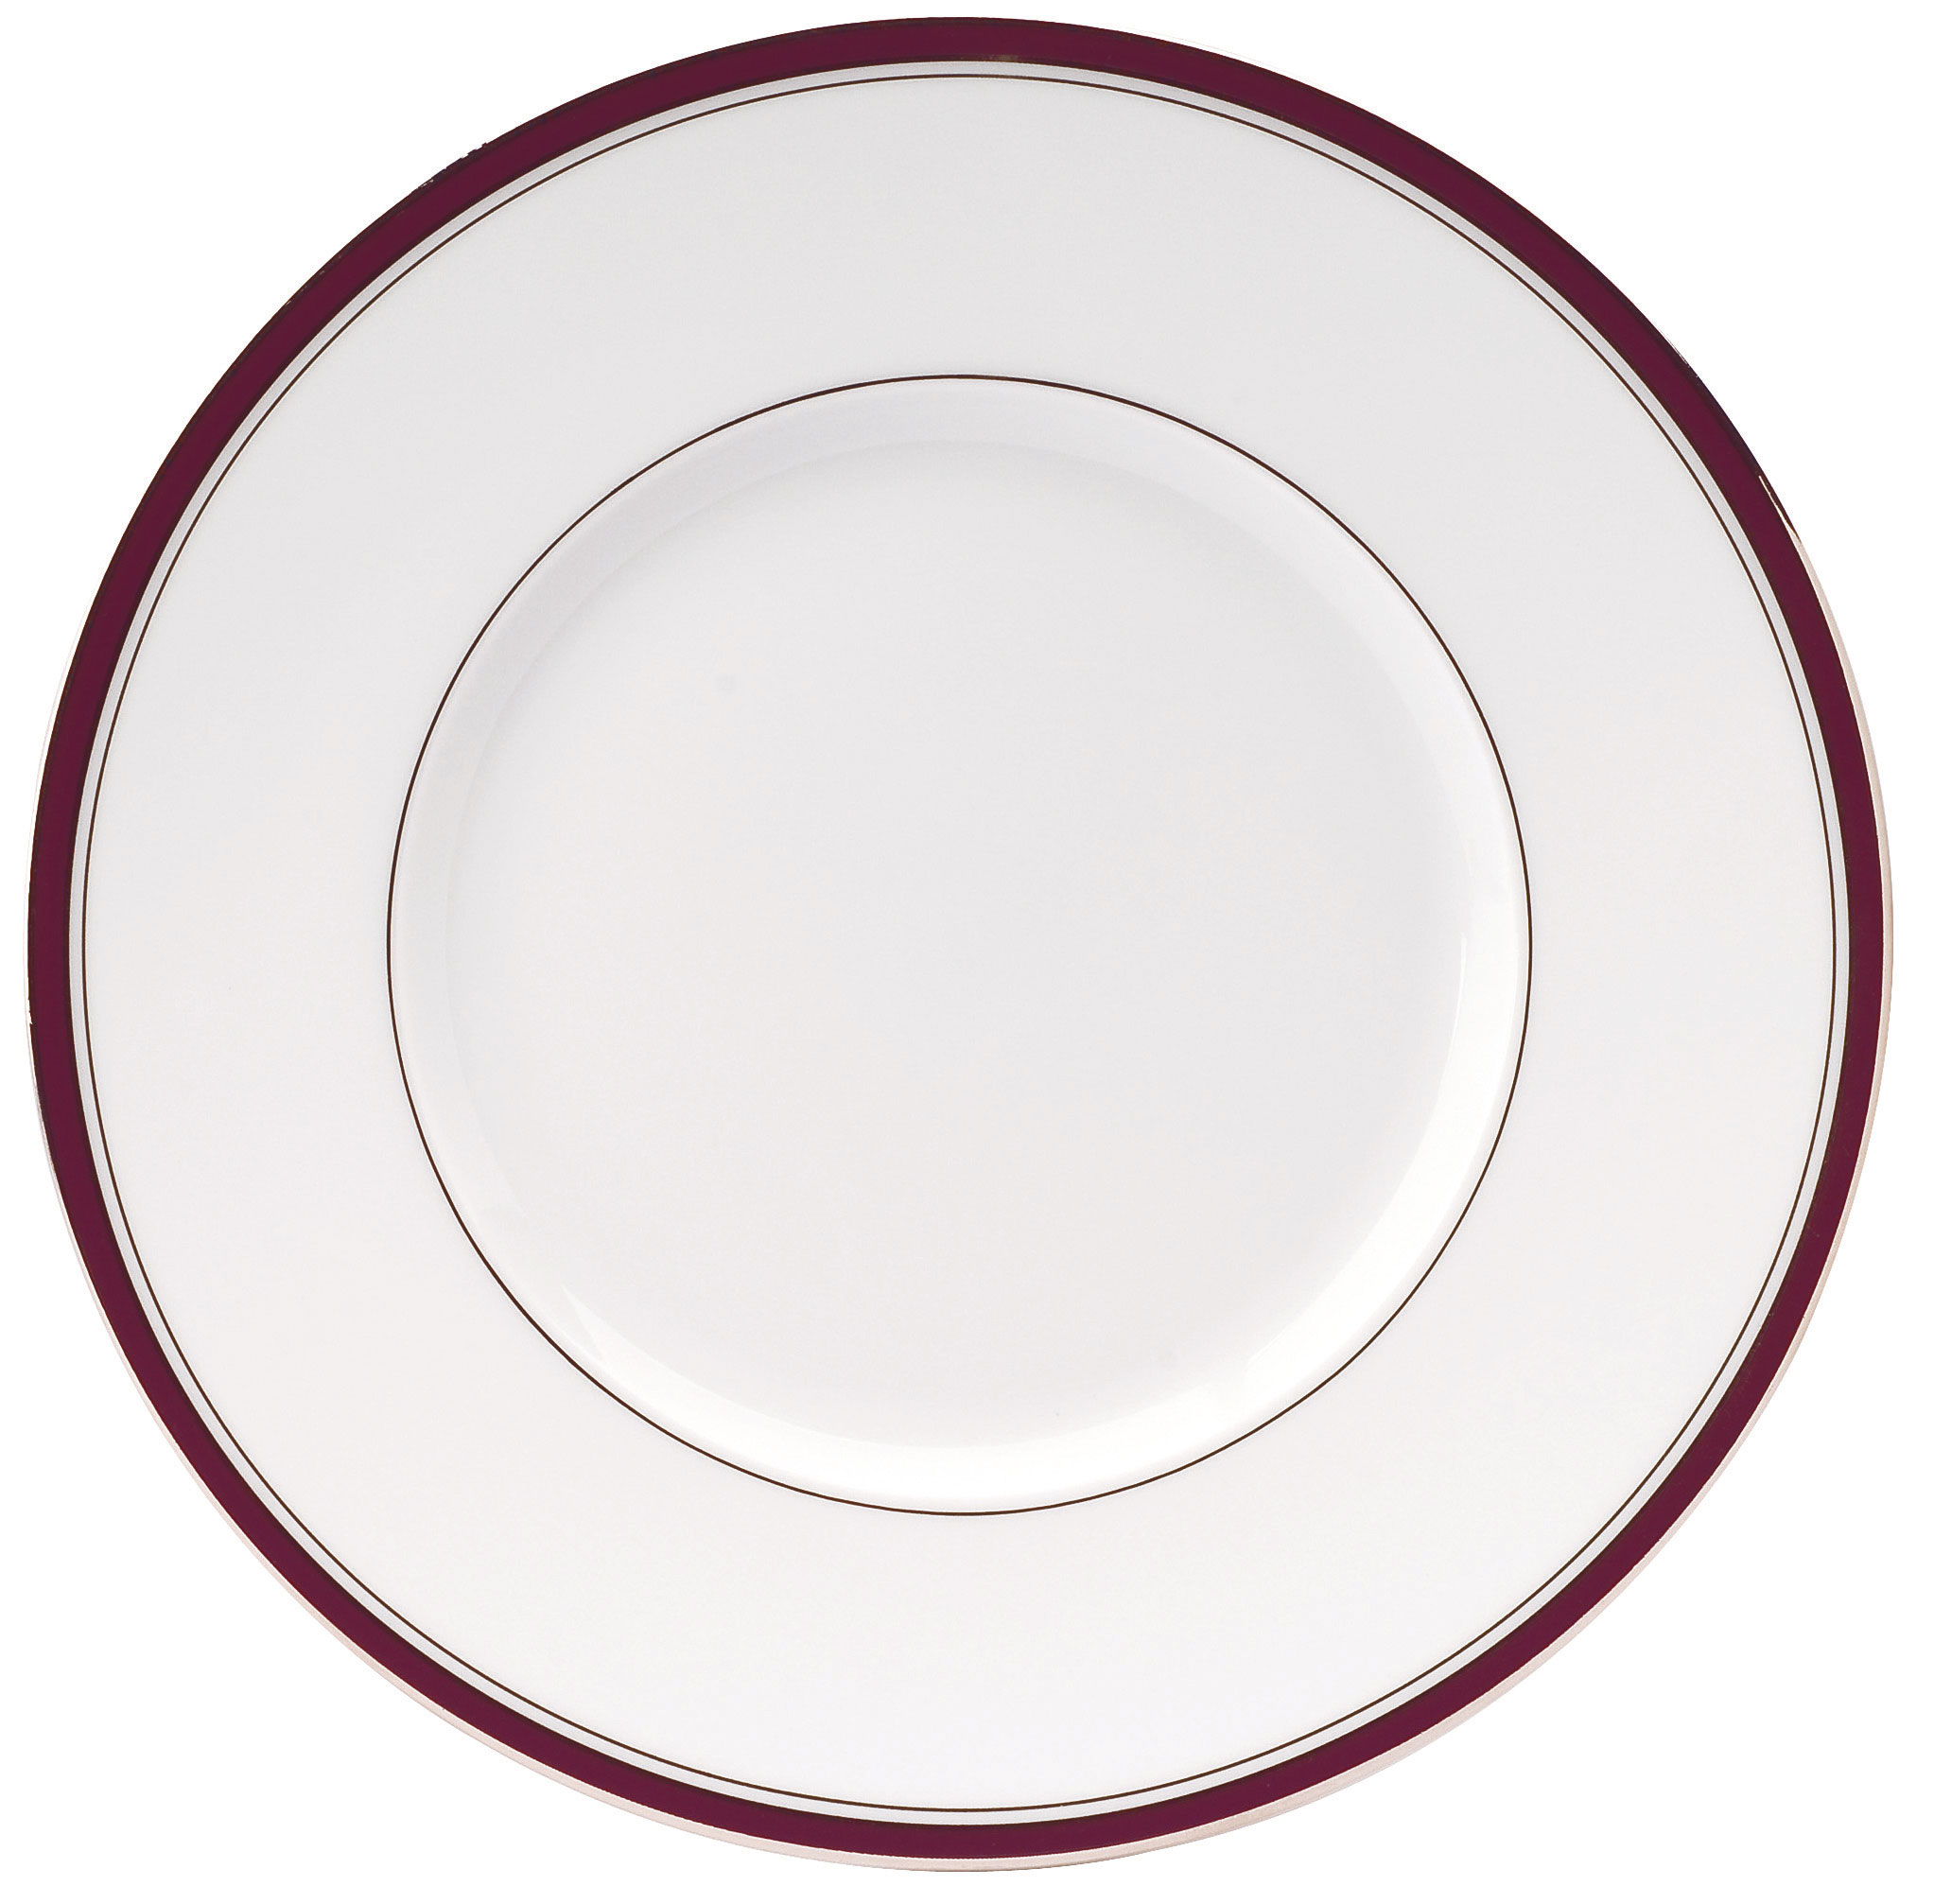 excellence dinner plate plum at the perfect present company